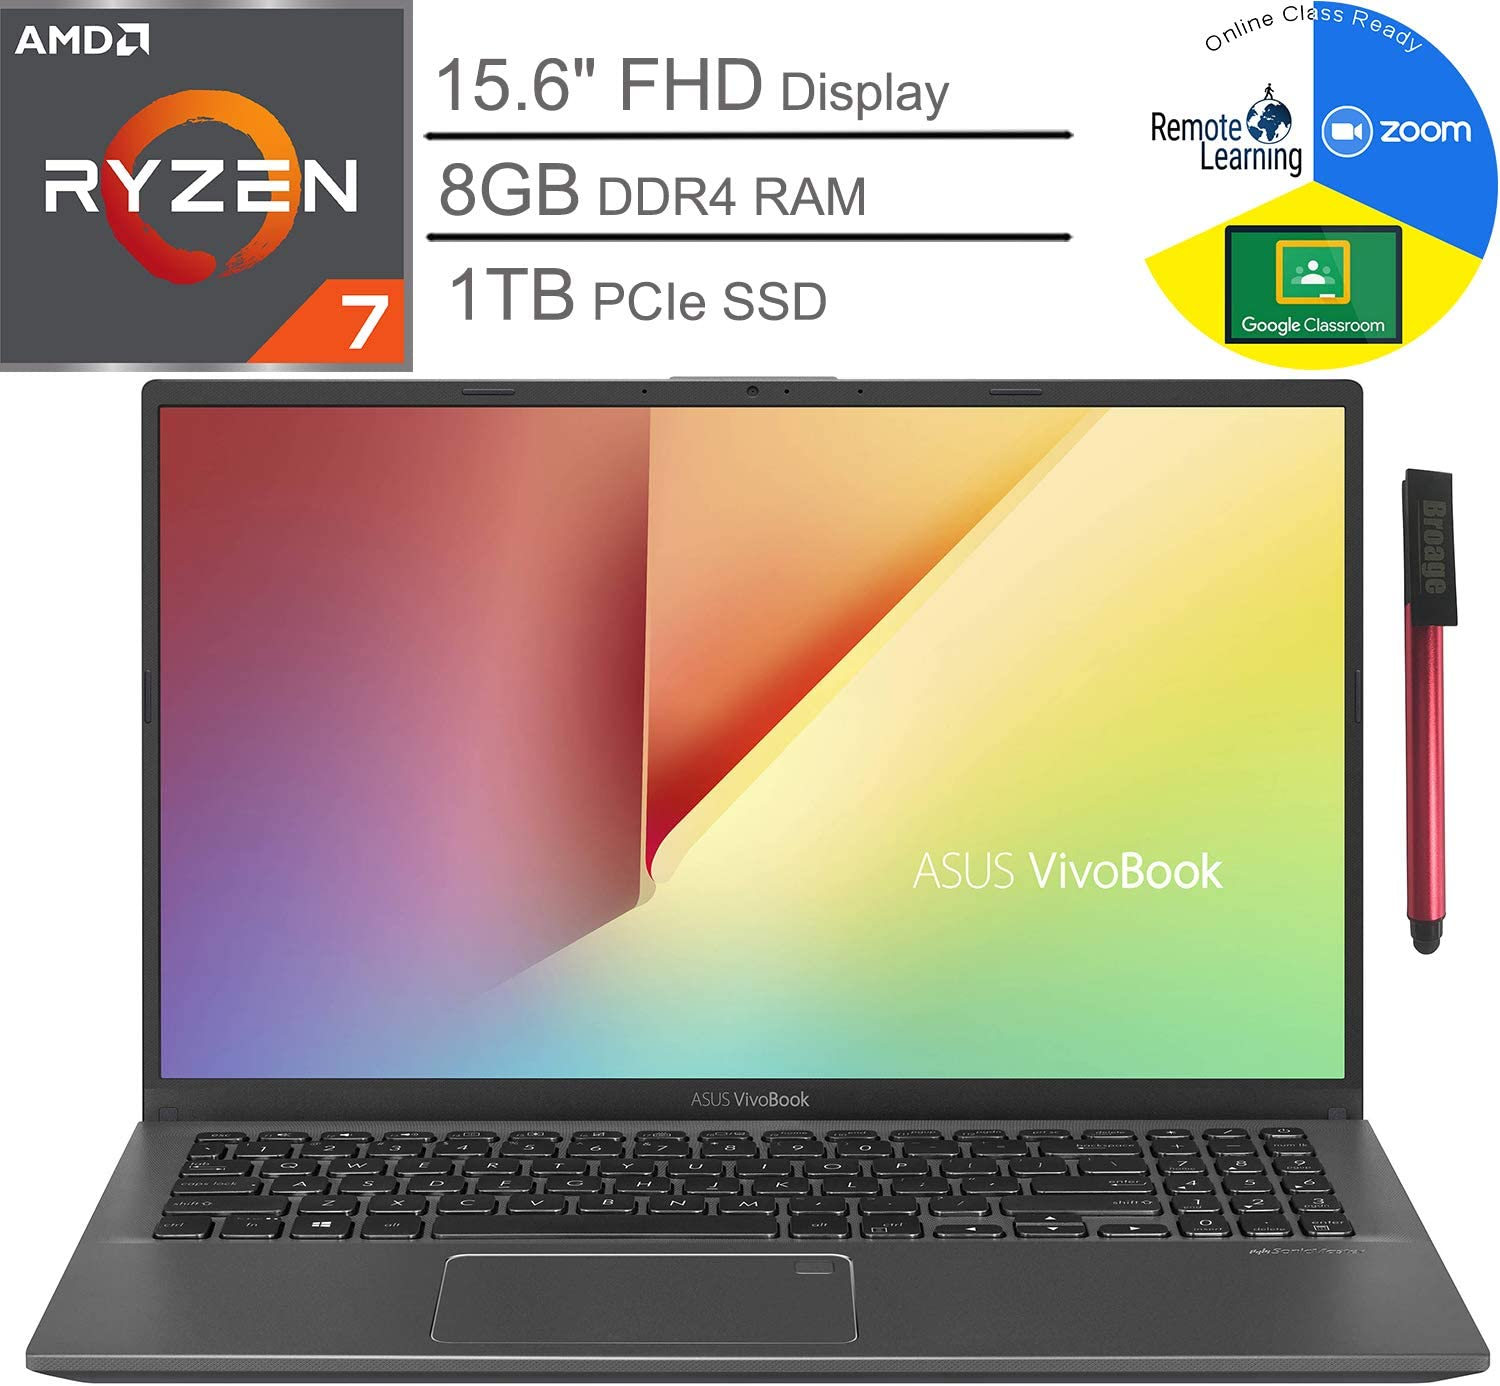 "ASUS VivoBook 15 15.6"" FHD Laptop Computer_ AMD Quad-Core Ryzen 7-3700U up to 4.0GHz (Beats i7-8565U)_ 8GB DDR4 RAM, 1TB PCIe SSD_ Webcam_ Windows 10_ BROAGE 64GB Flash Drive_ Online Class Ready"